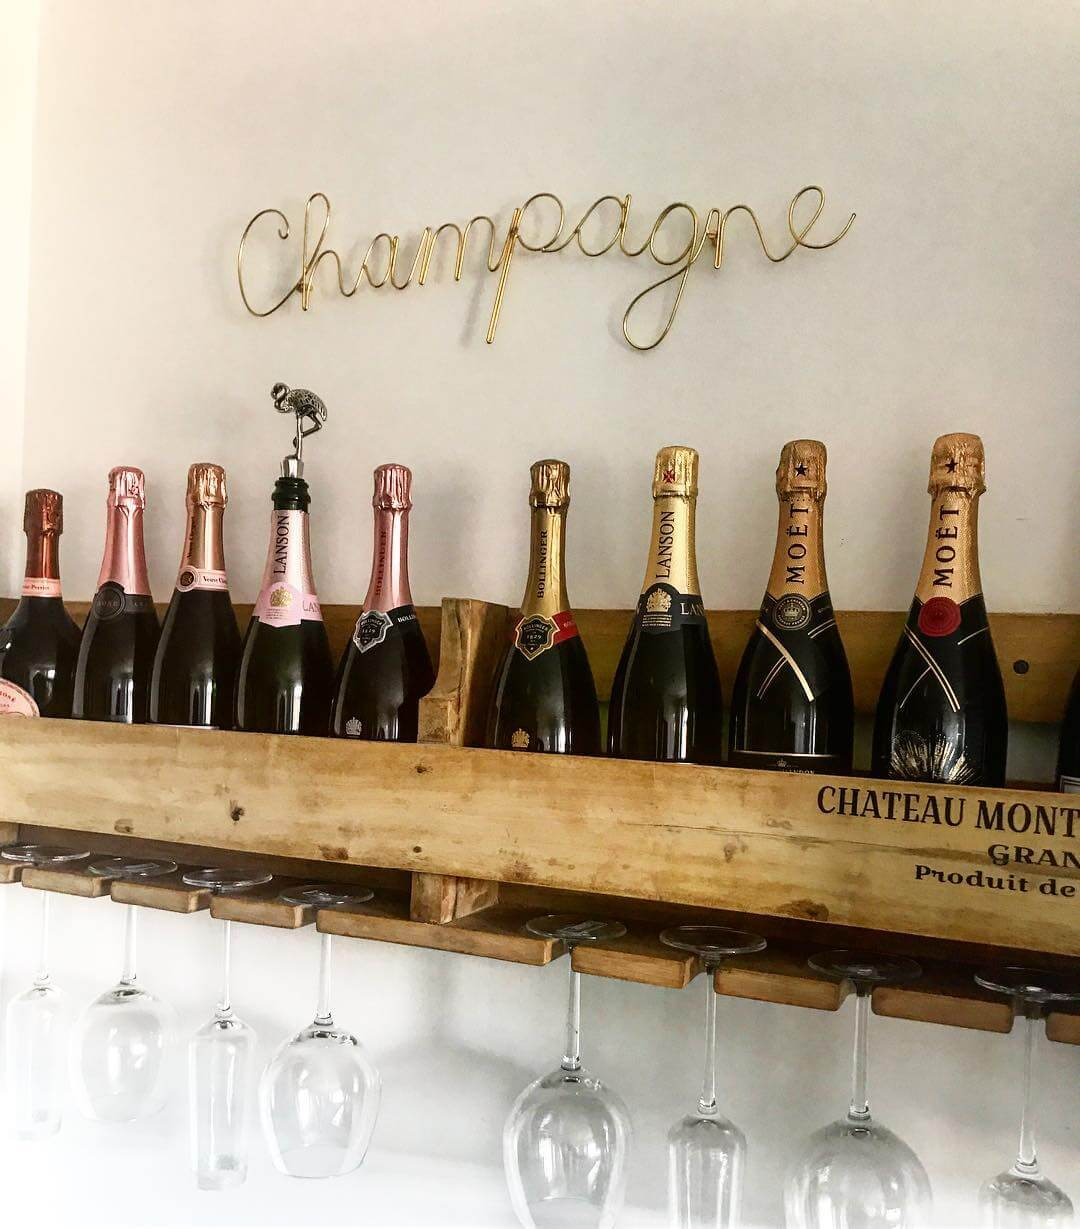 Cha,pagne bottles: check out this new build home in the UK - it's eclectic, glamorous and welcoming @my_home_impression